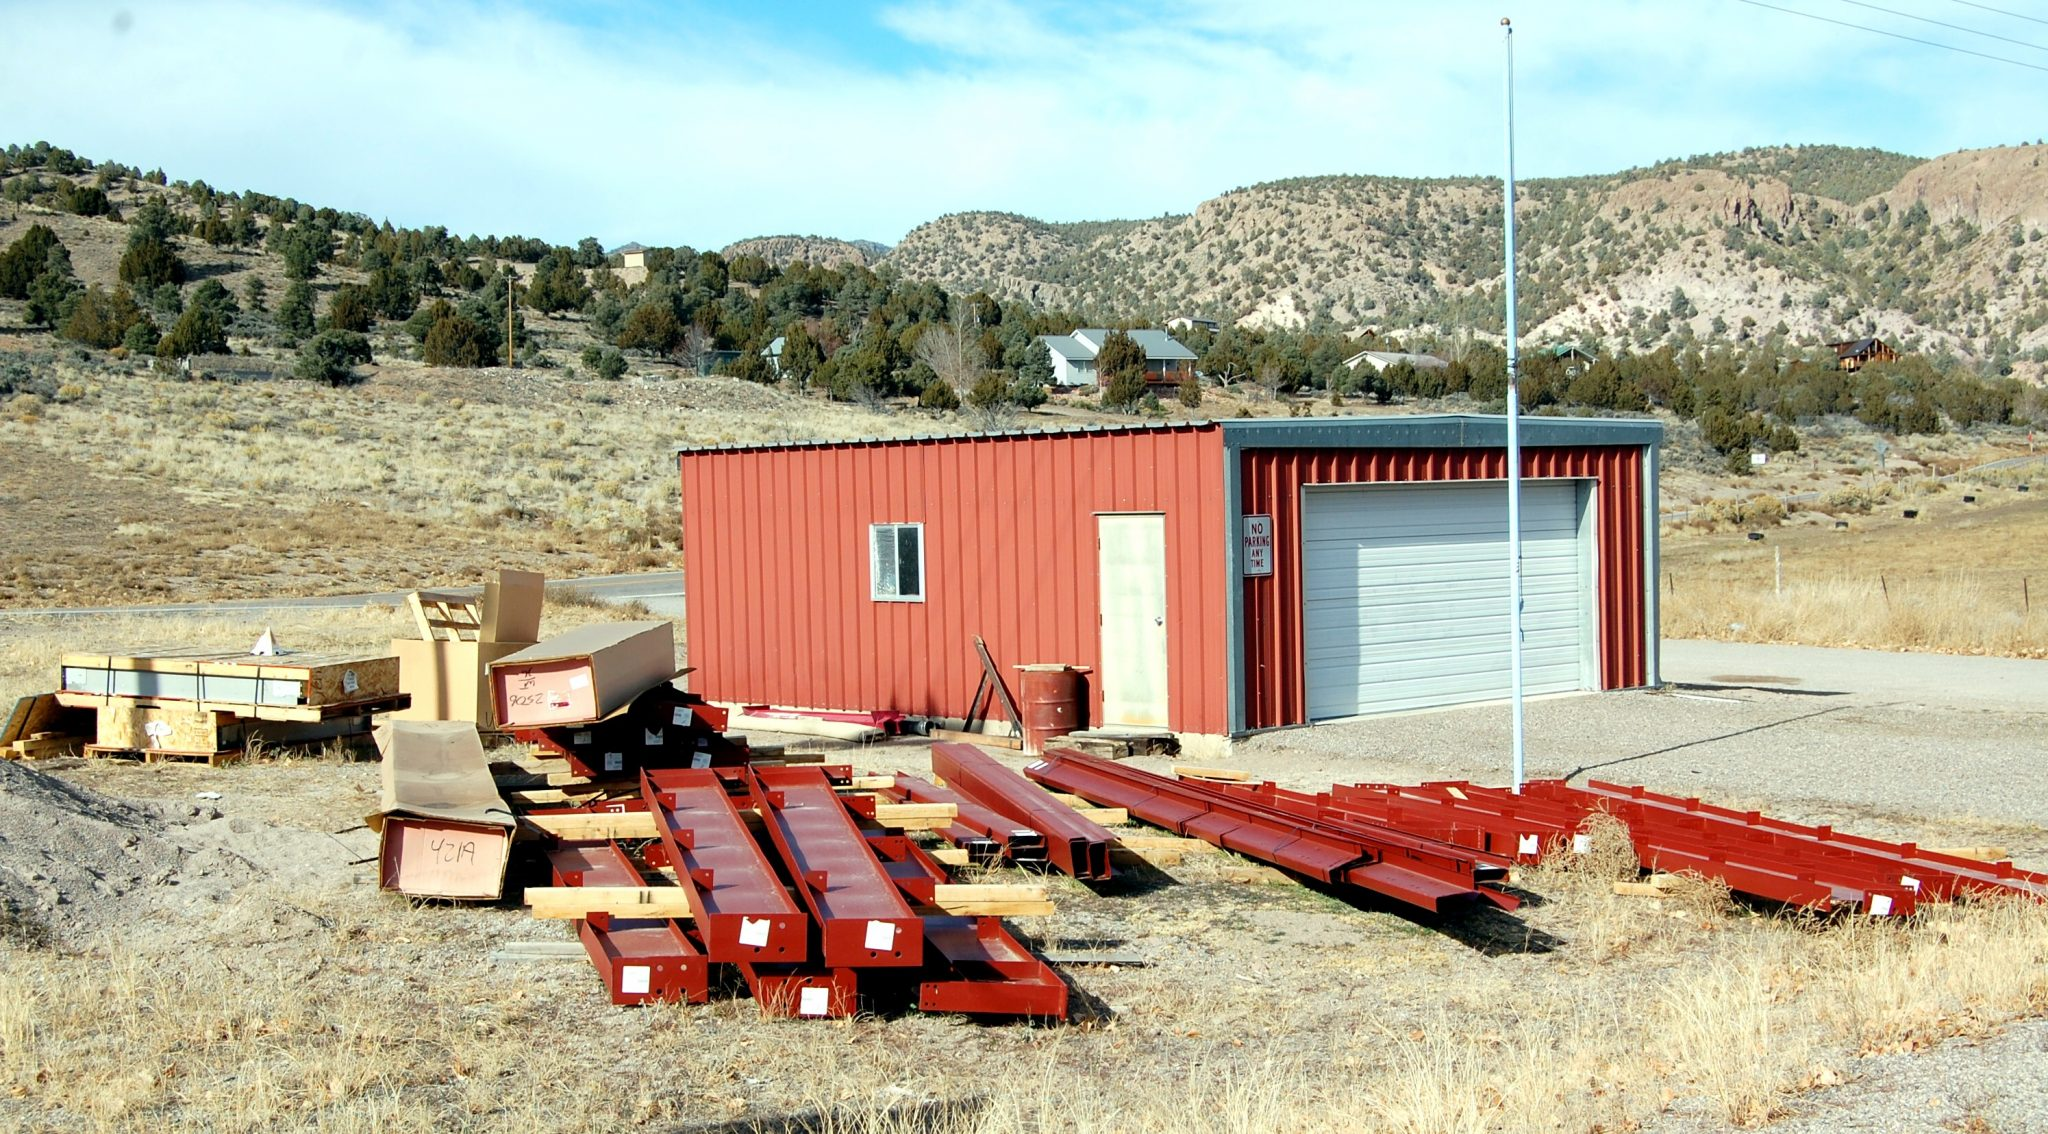 New Eagle Valley fire station ready to begin construction